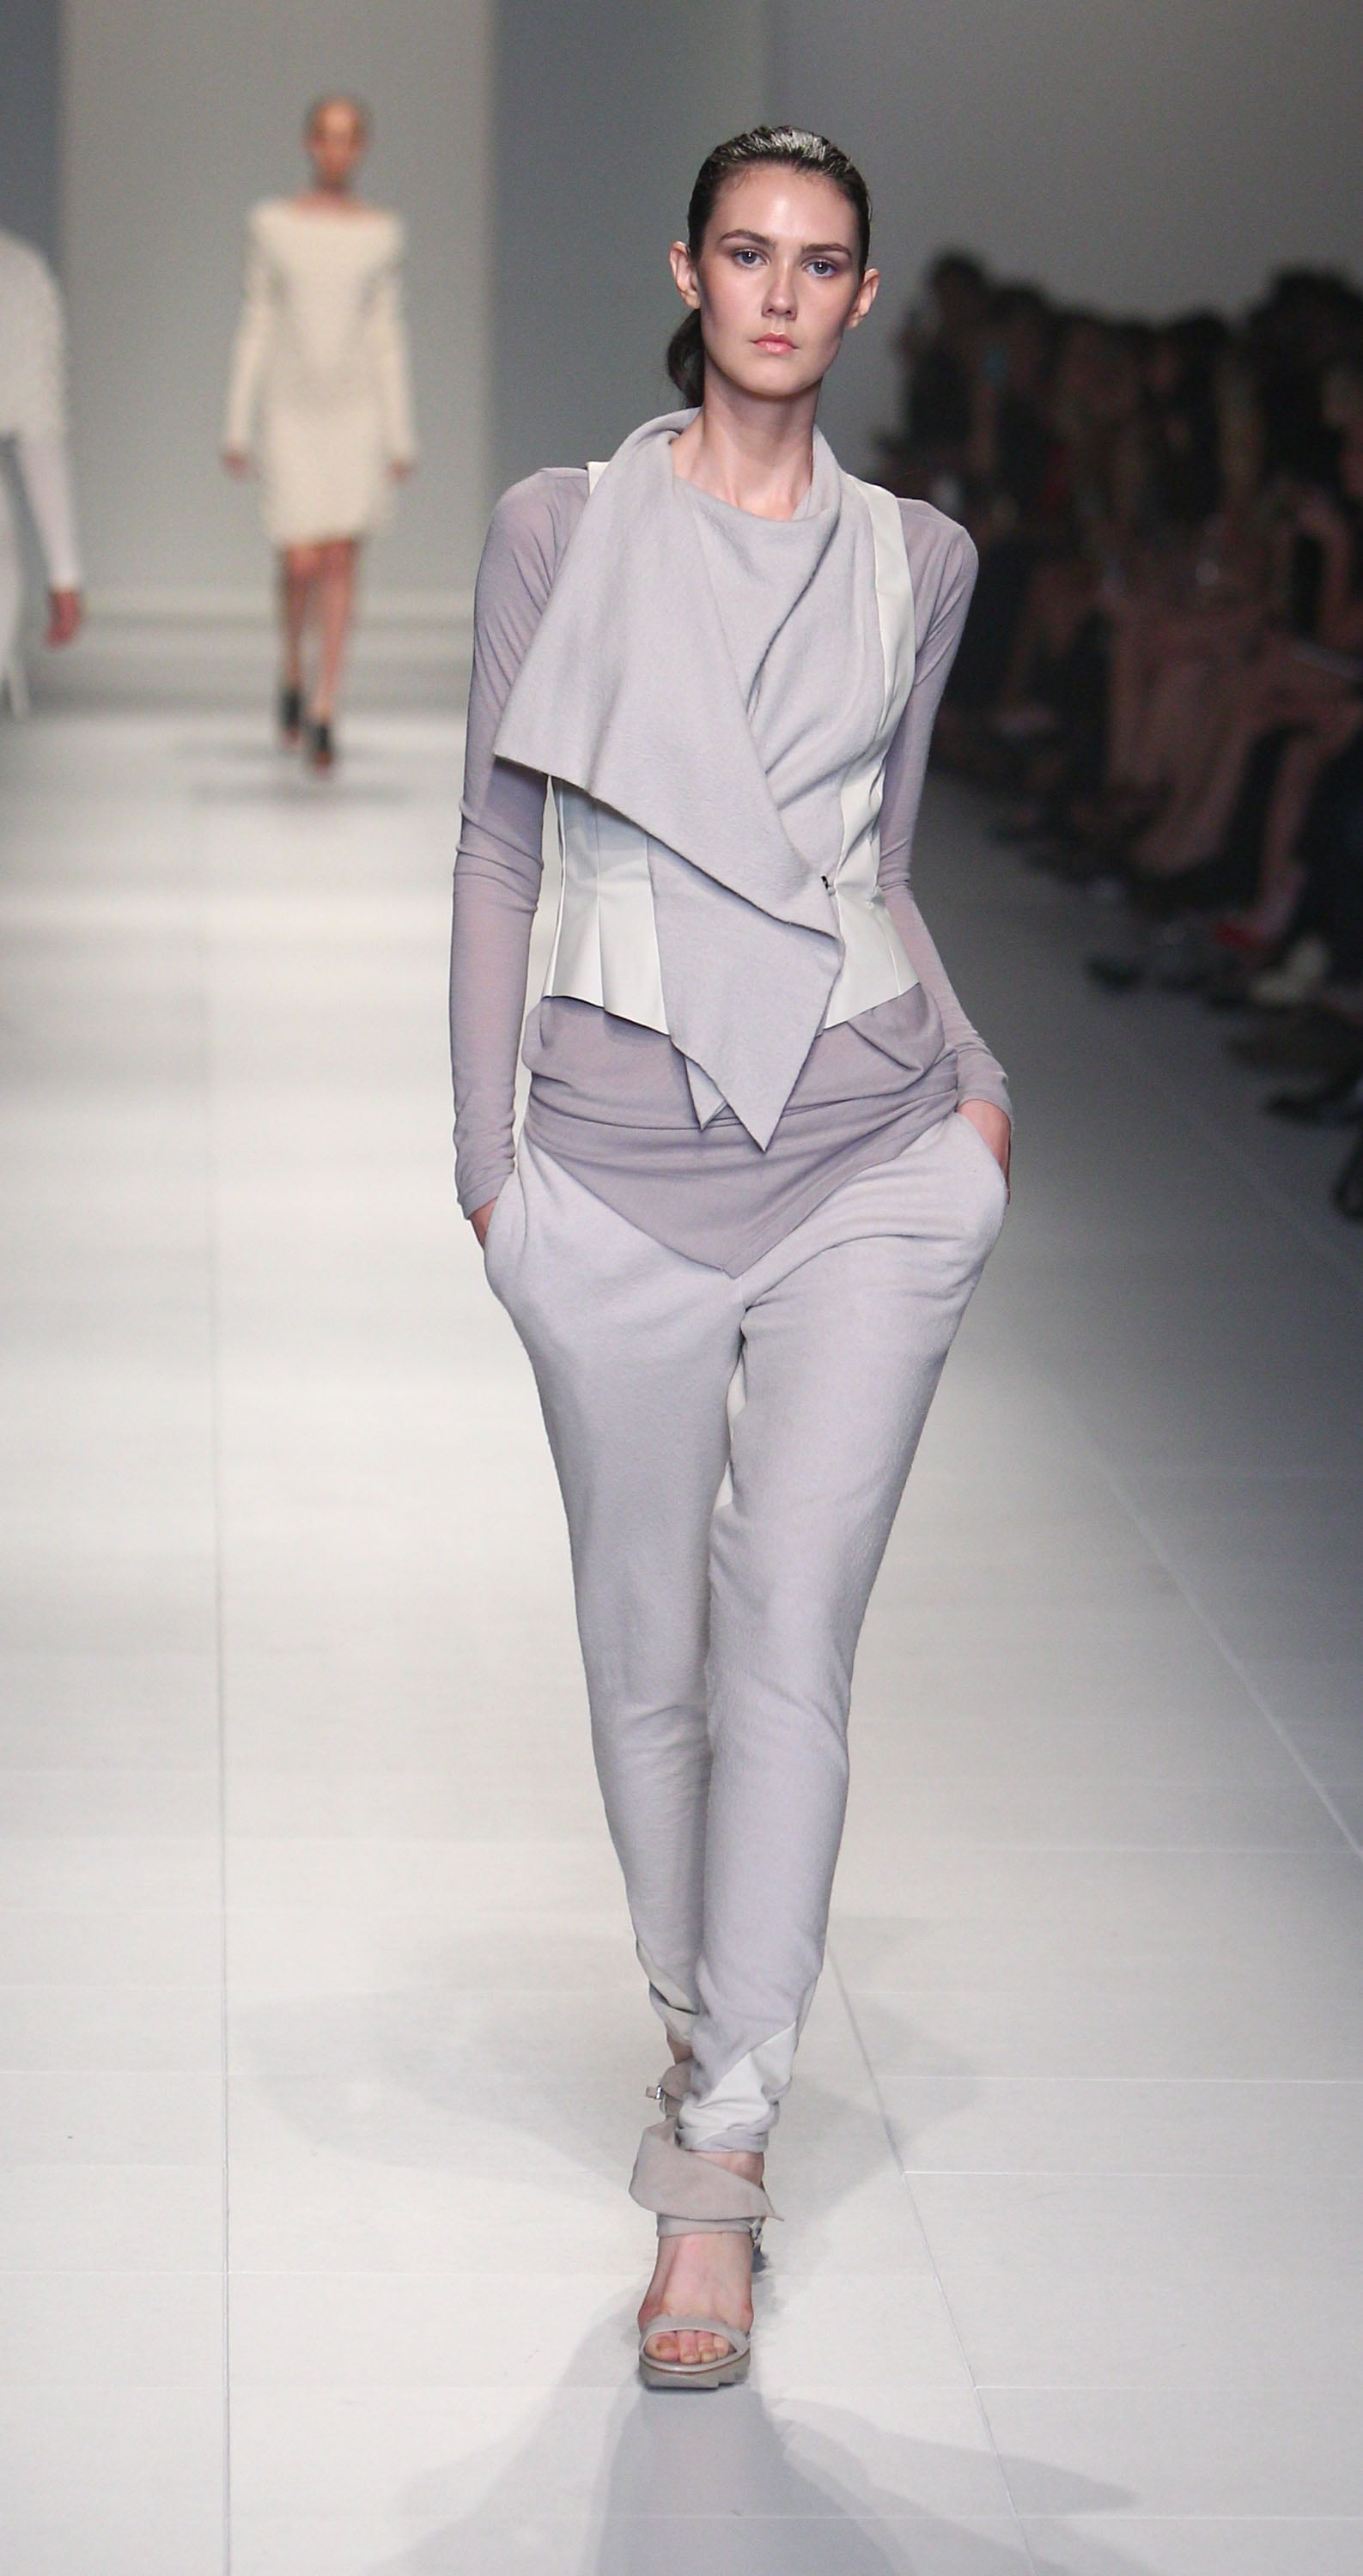 A lesson in chic layering from Lui Hon.